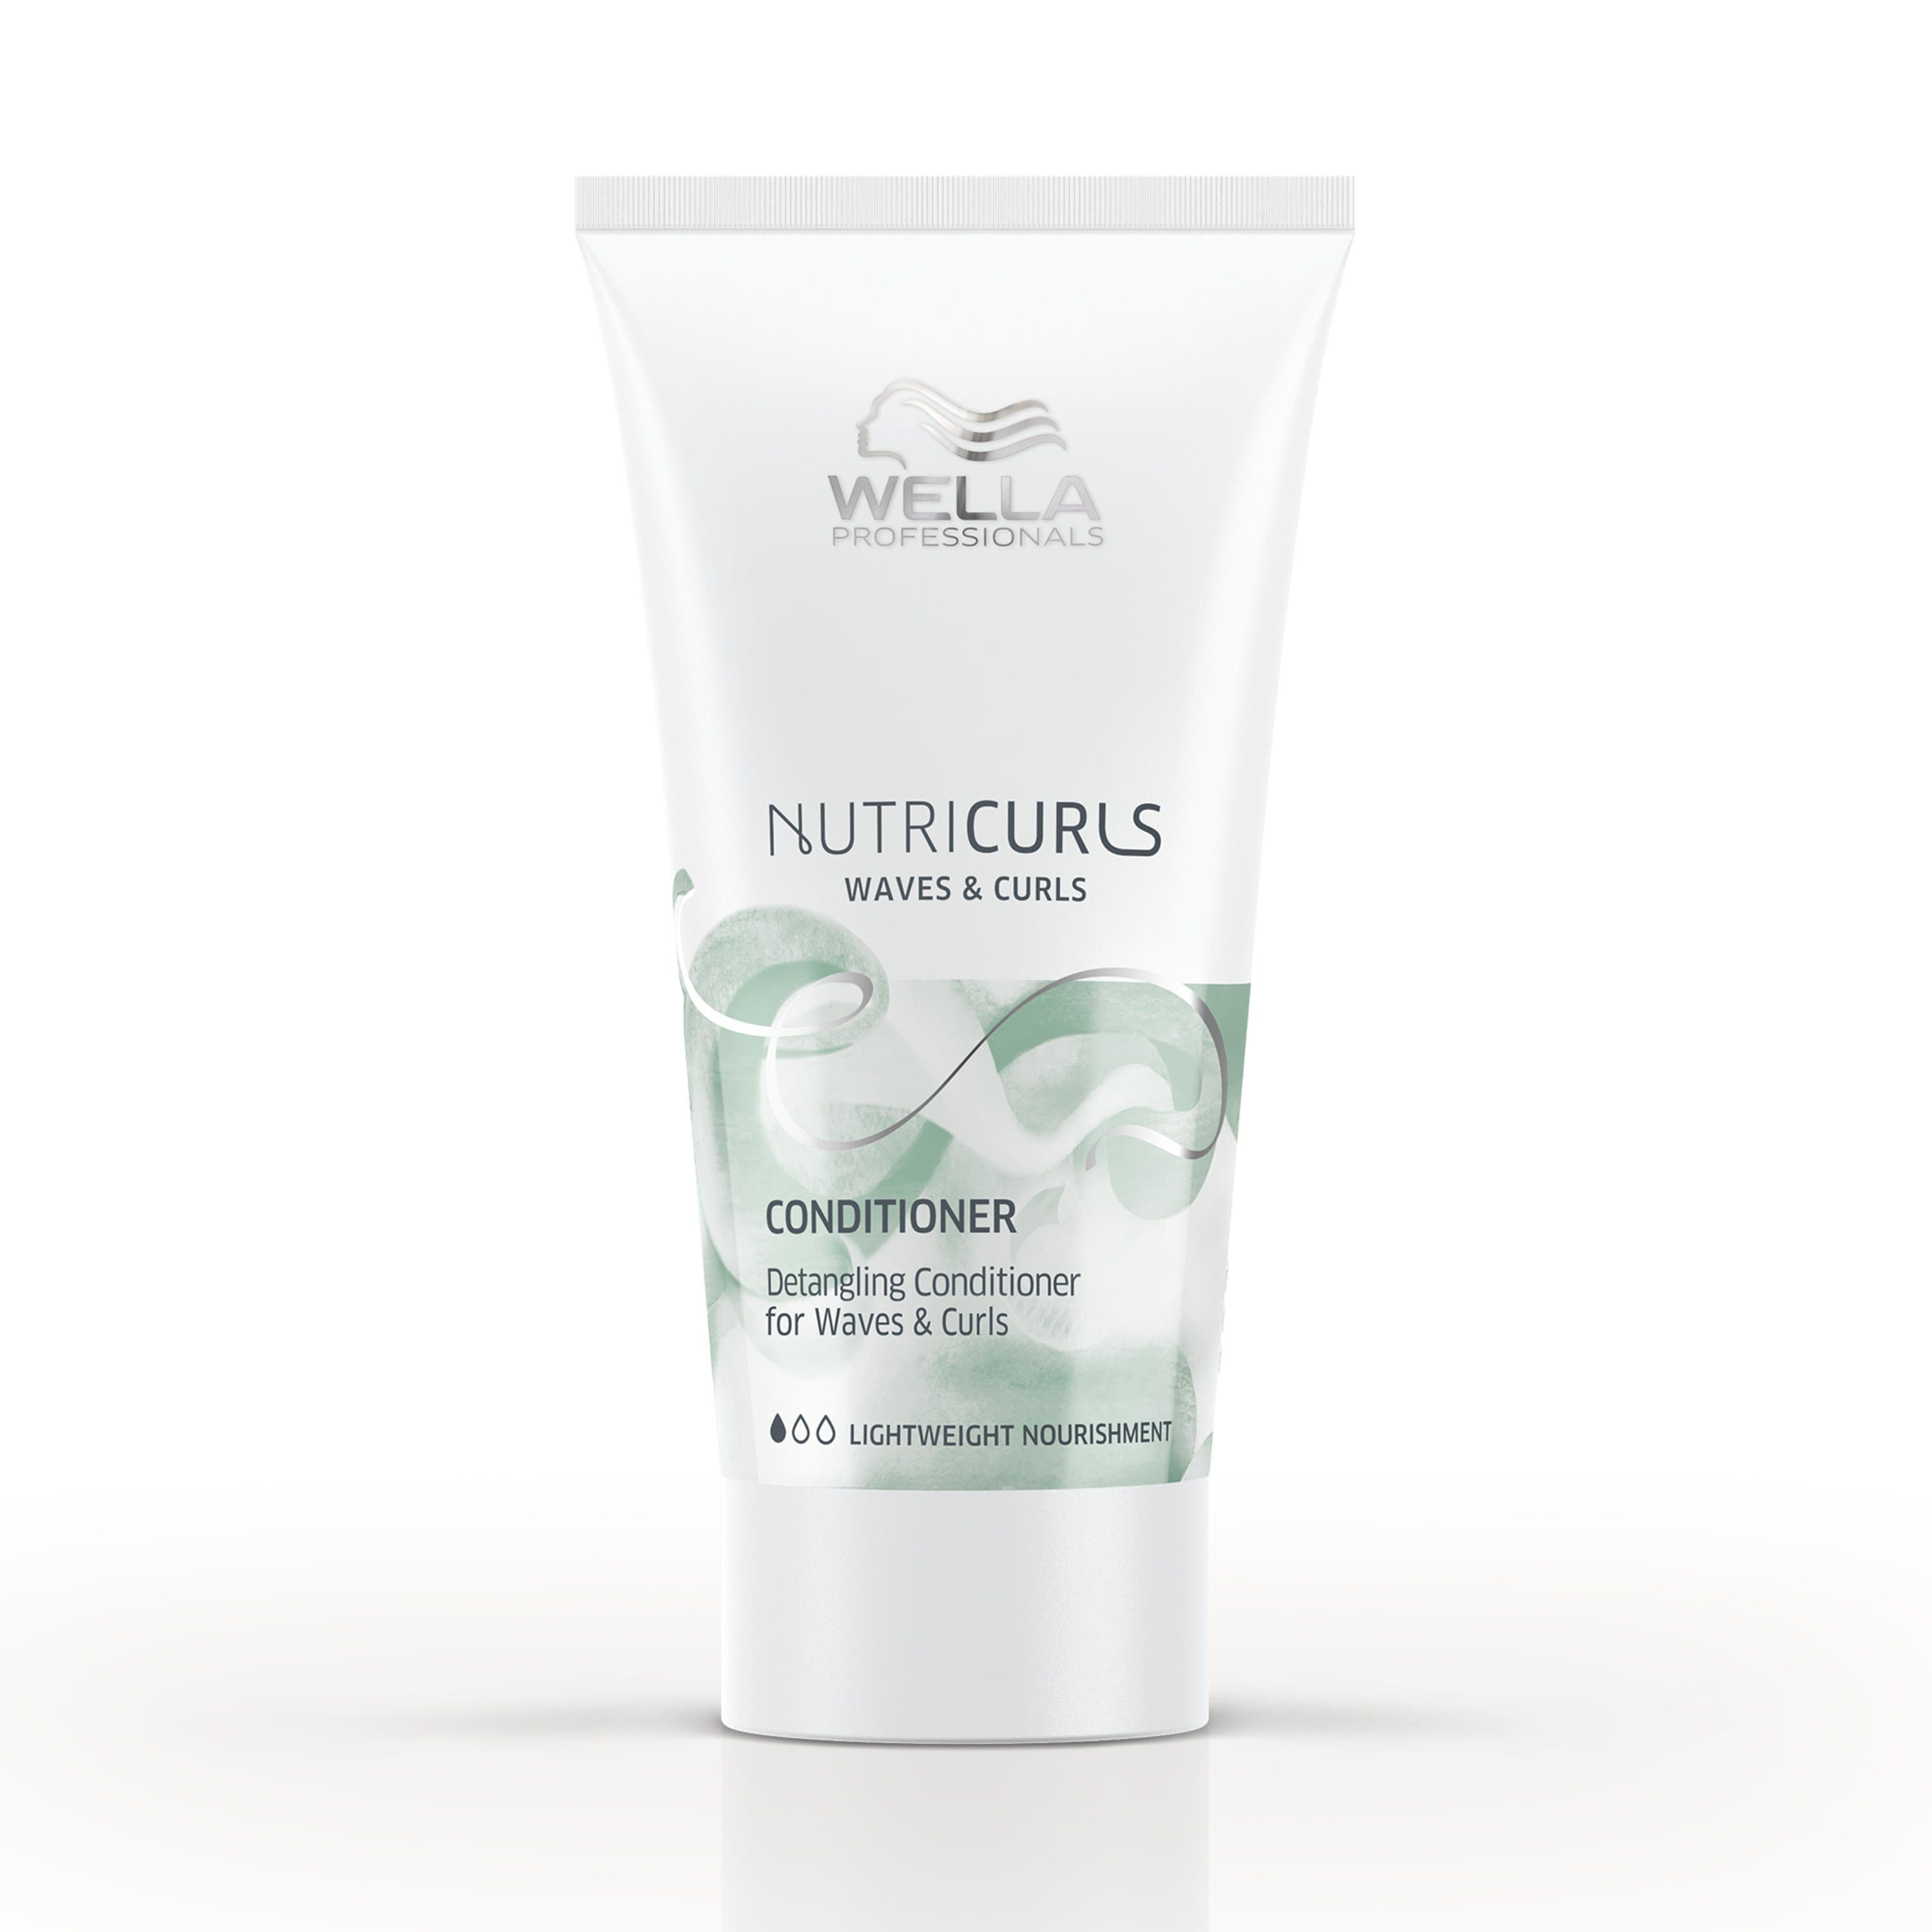 Detangling Conditioner For Waves & Curls | NUTRICURLS | WELLA PROFESSIONAL | SHSalons.com